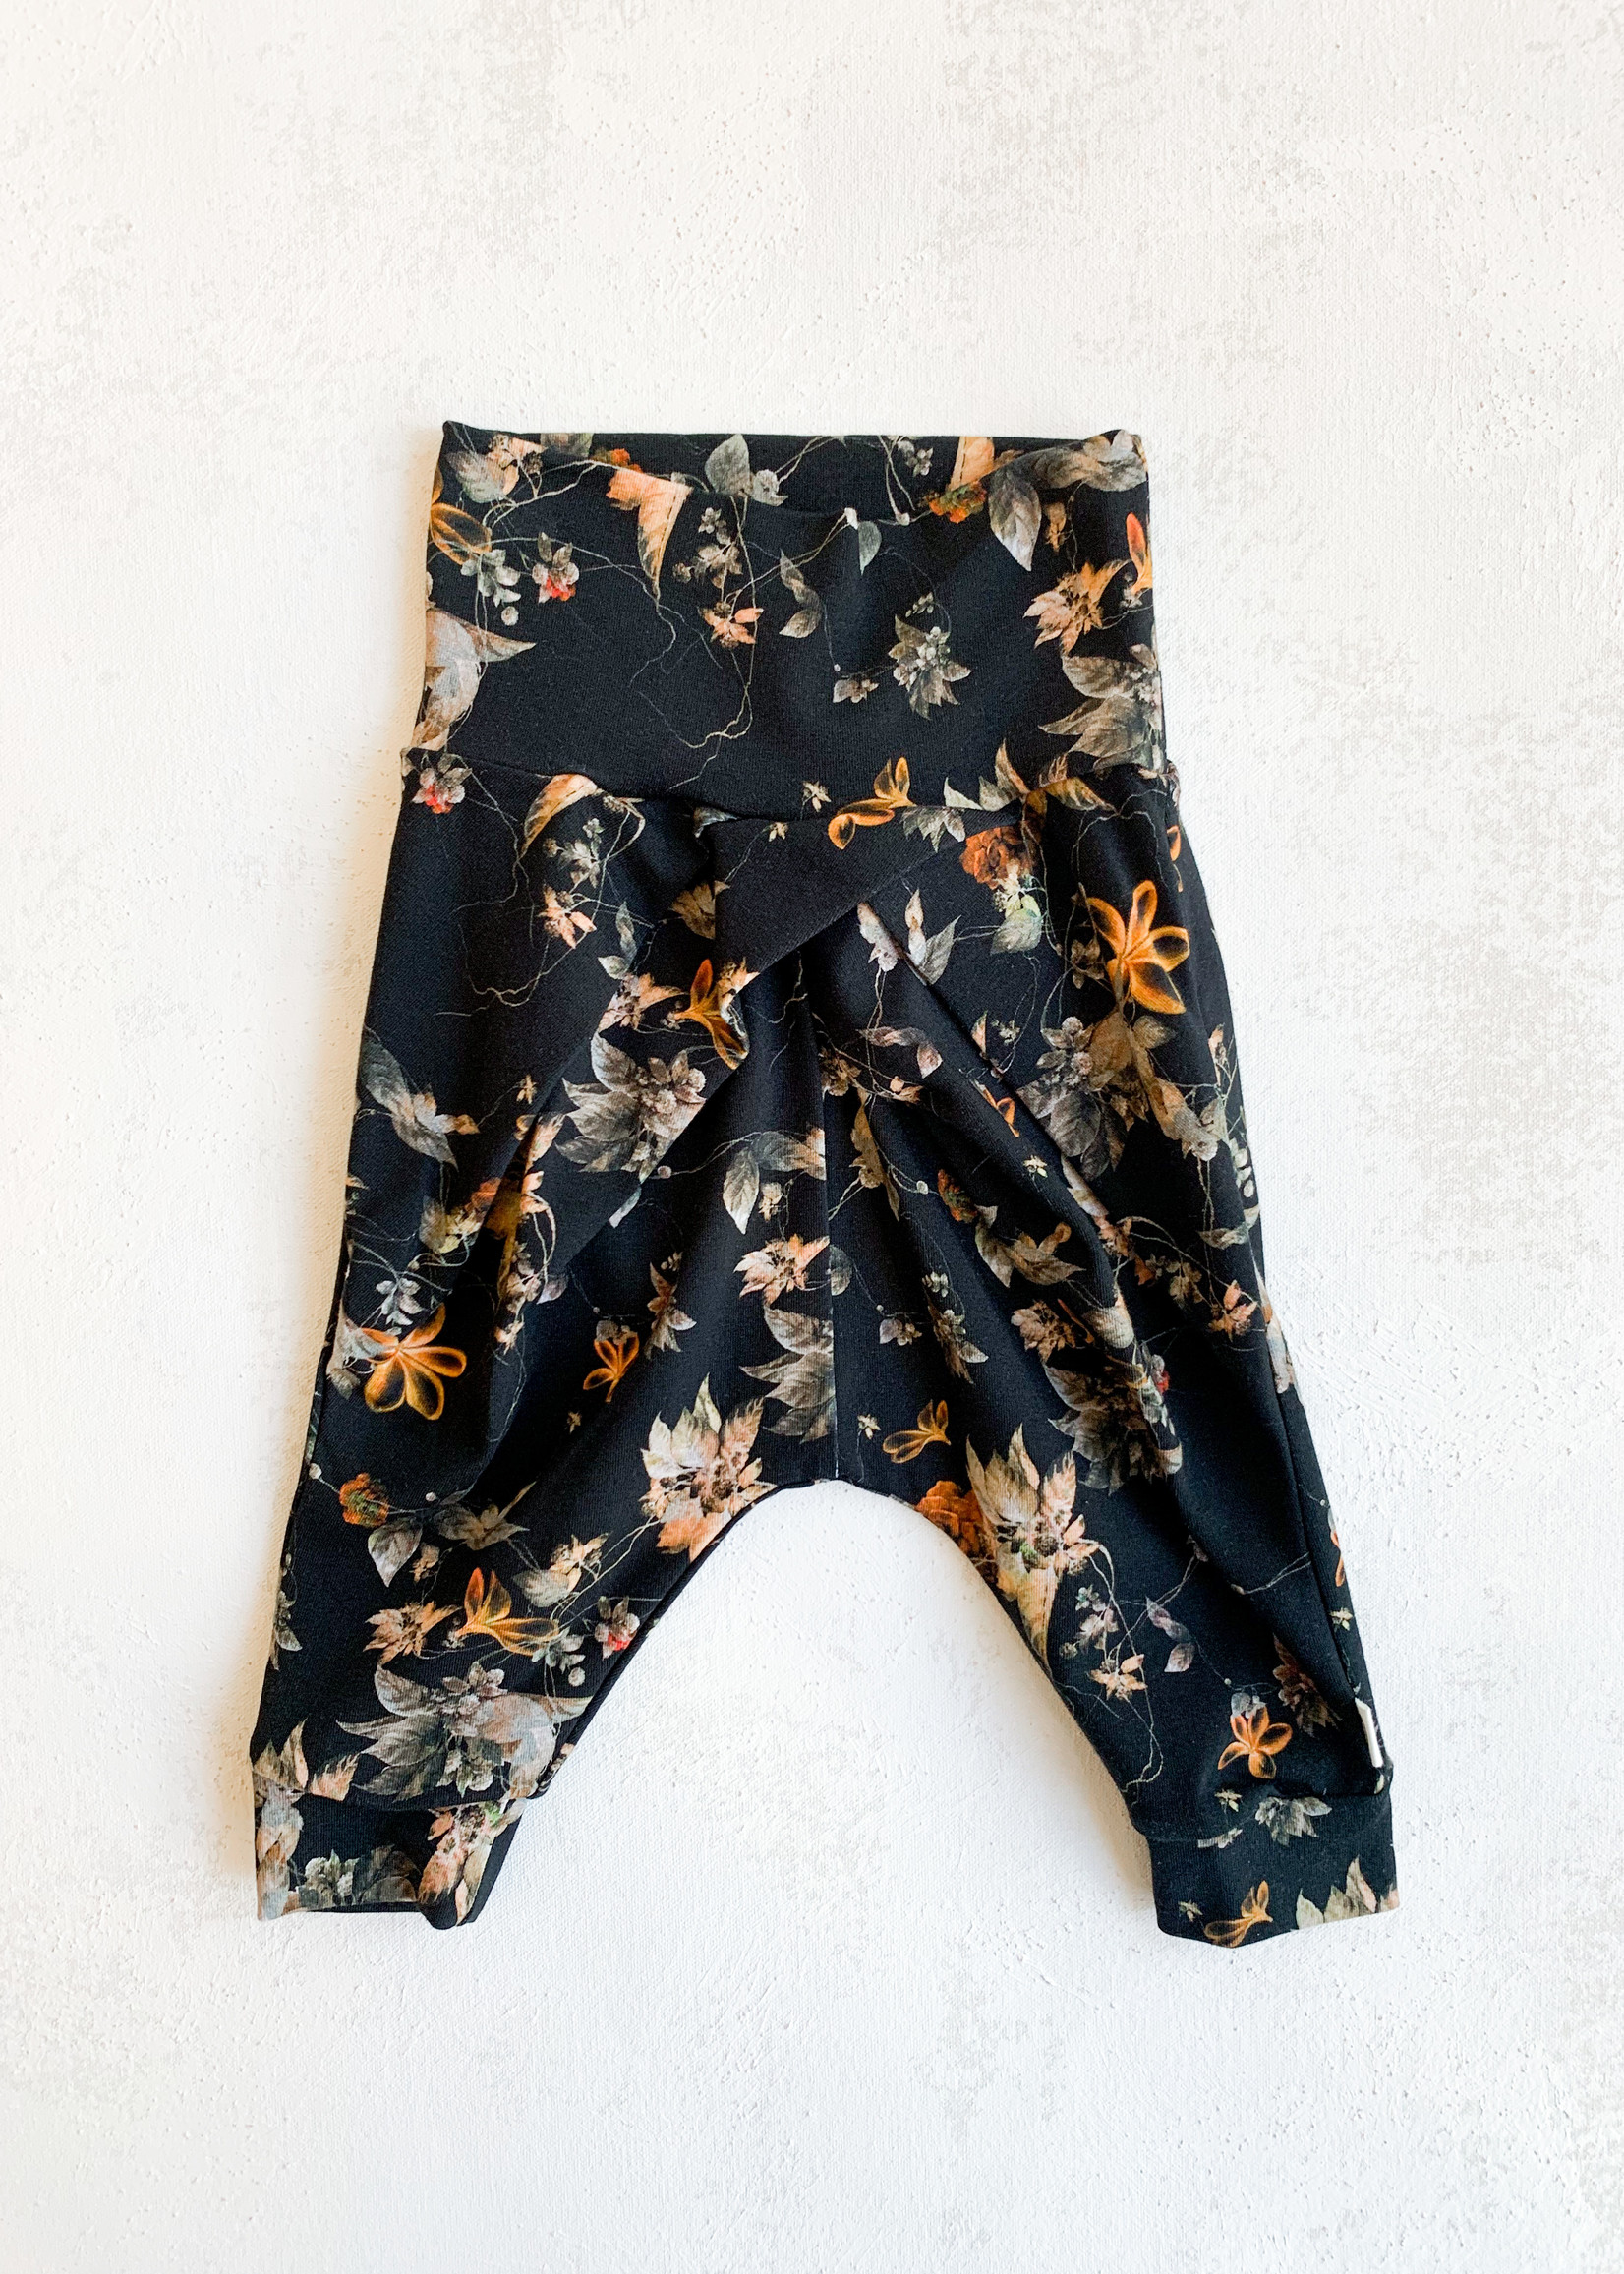 Elitaire Petite Poetry Pants in Antique Floral